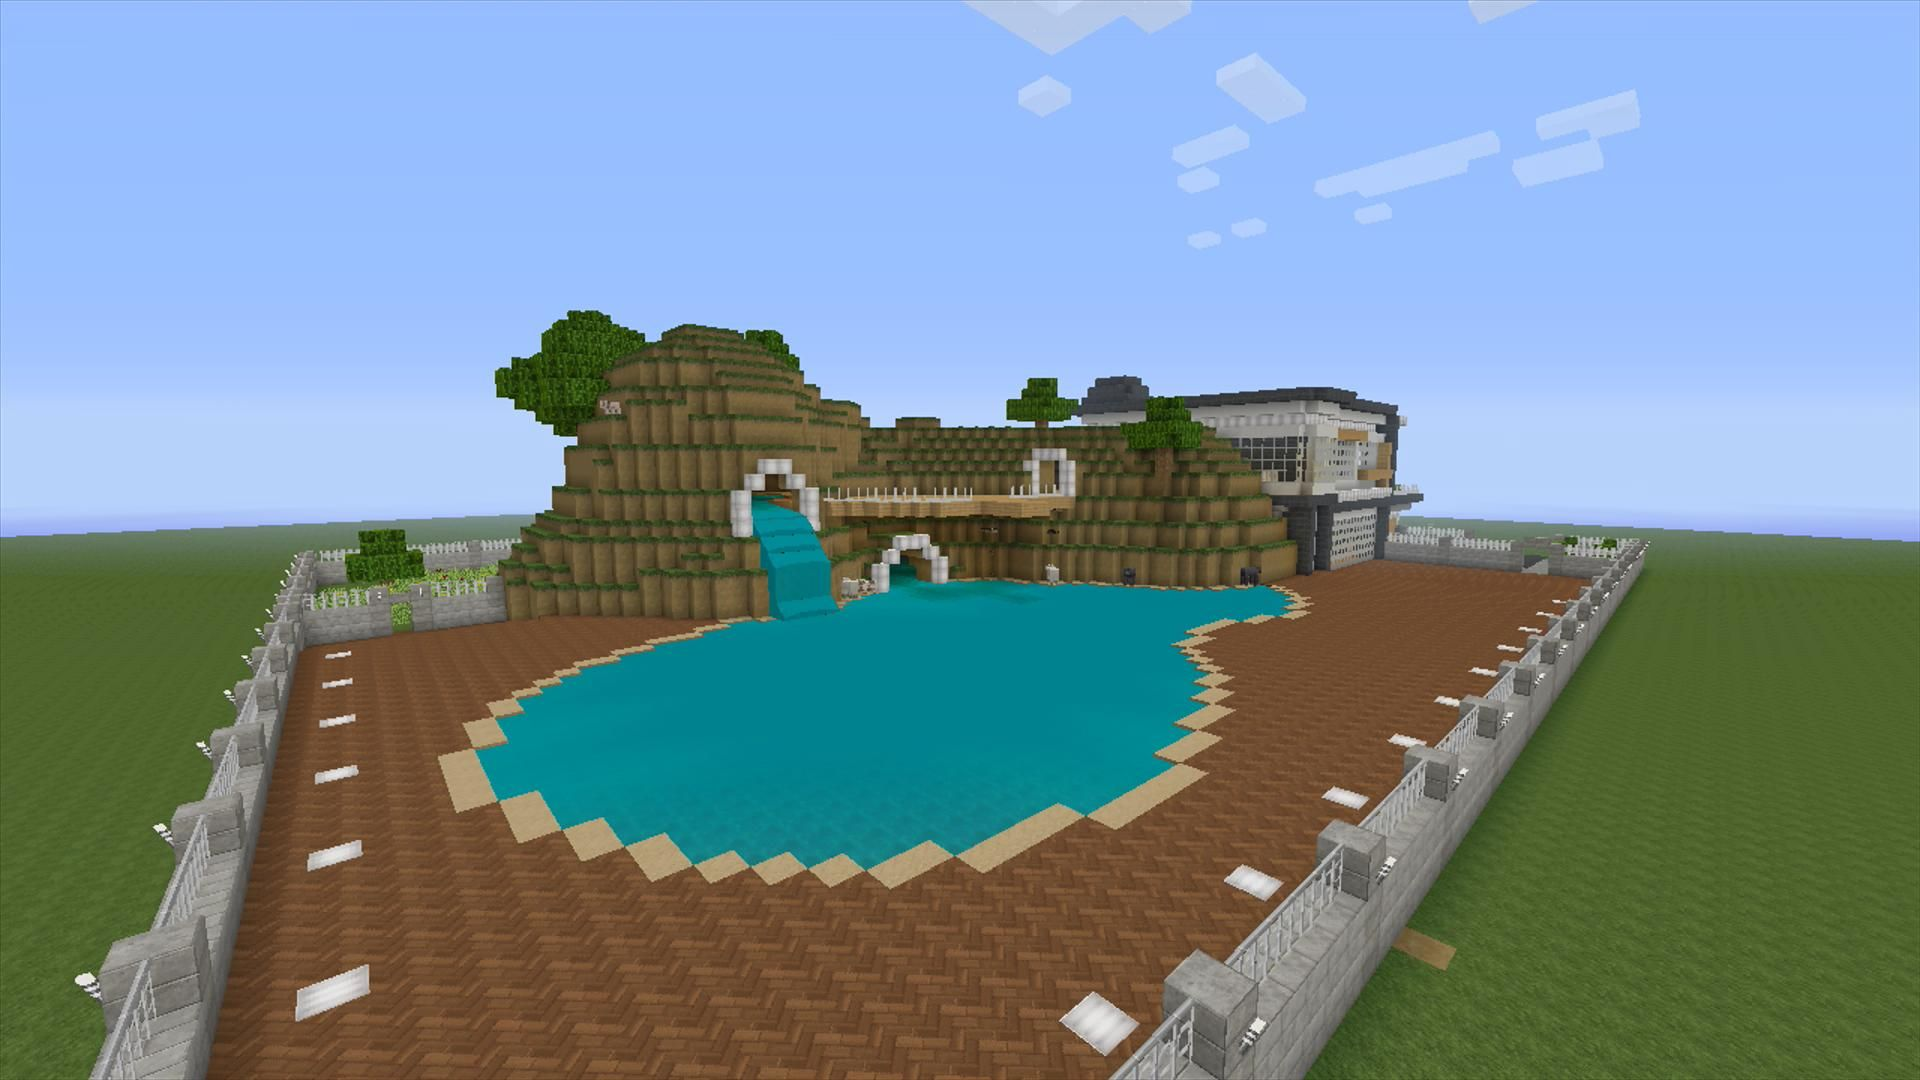 Minecraft lake house tutorial minecraft pinterest tutorials minecraft lake house tutorial baditri Choice Image